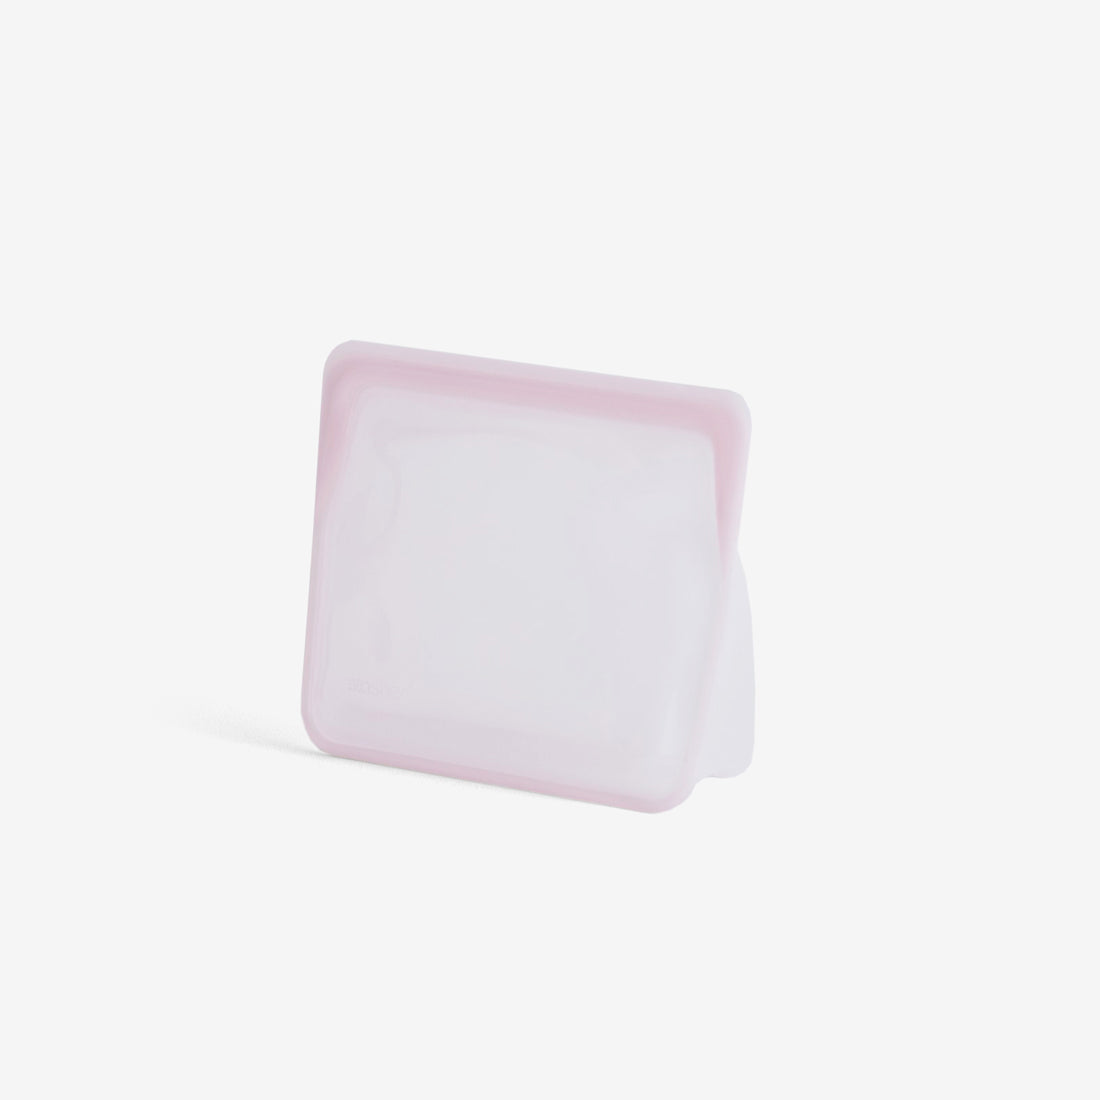 Stasher Silicone STAND-UP Bag - Rainbow Pink